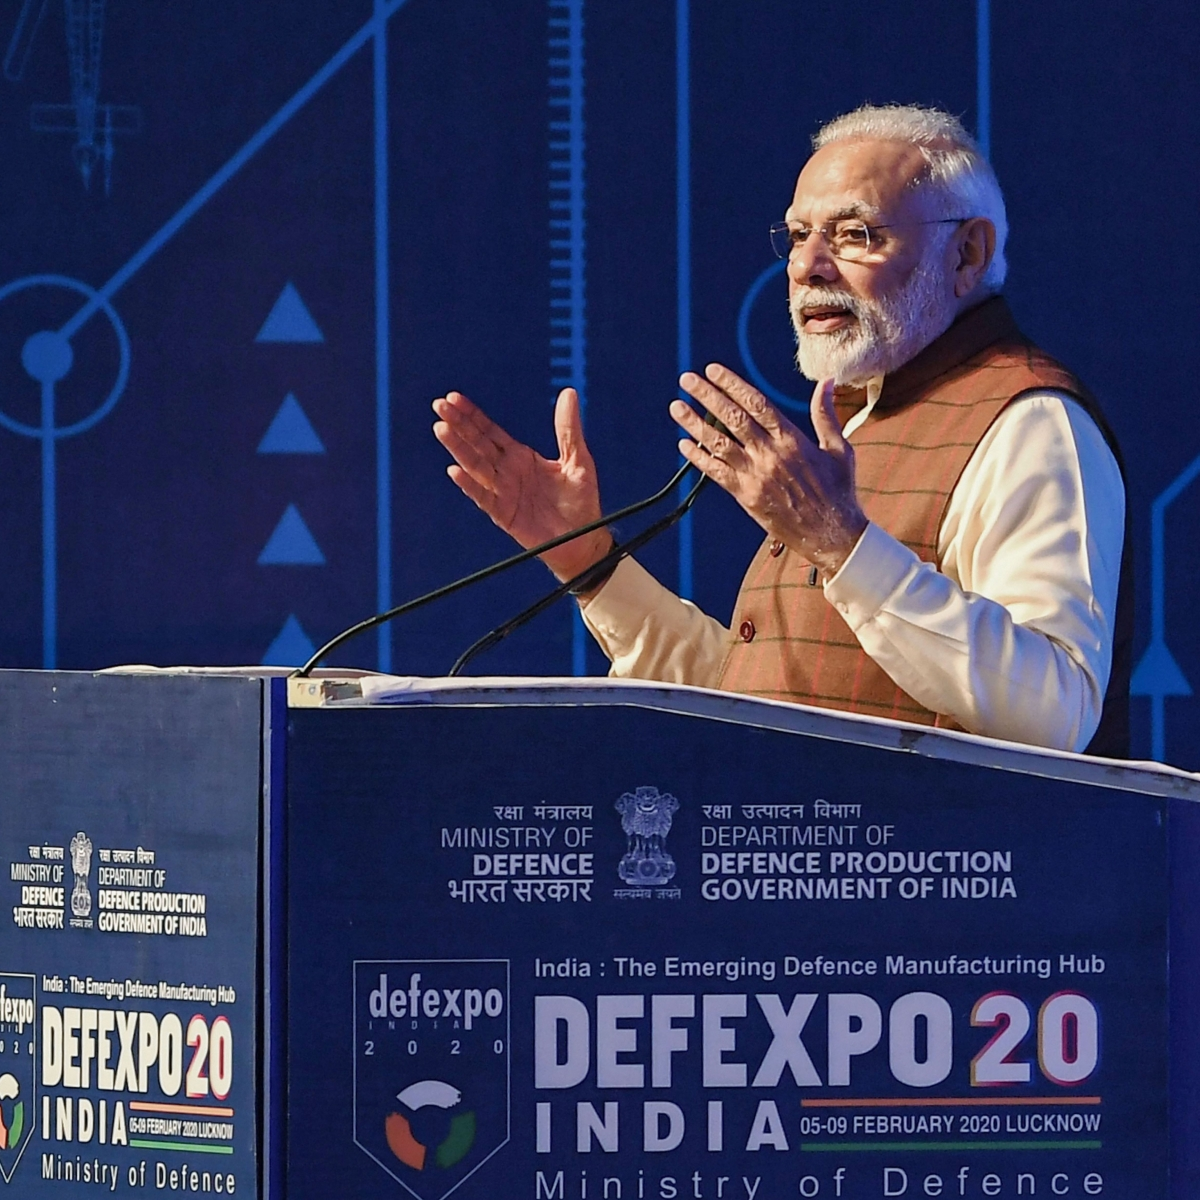 Defence Expo to bring Rs 50,000 crore investment and 3 lakh jobs for Uttar Pradesh